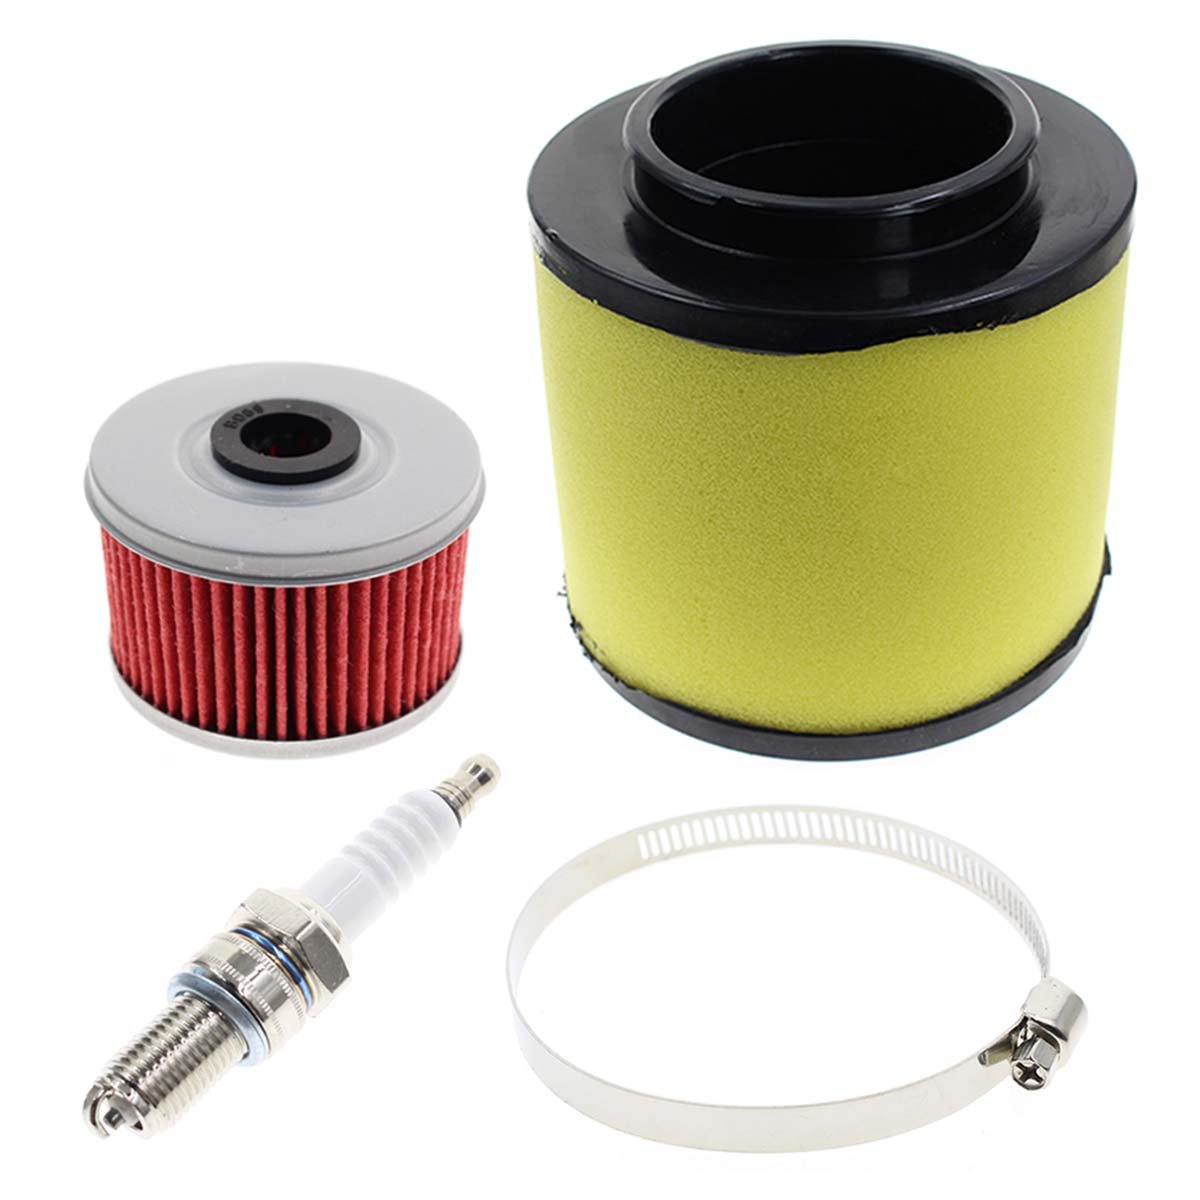 amazon com autokay air filter tune up kit for honda atv trx250